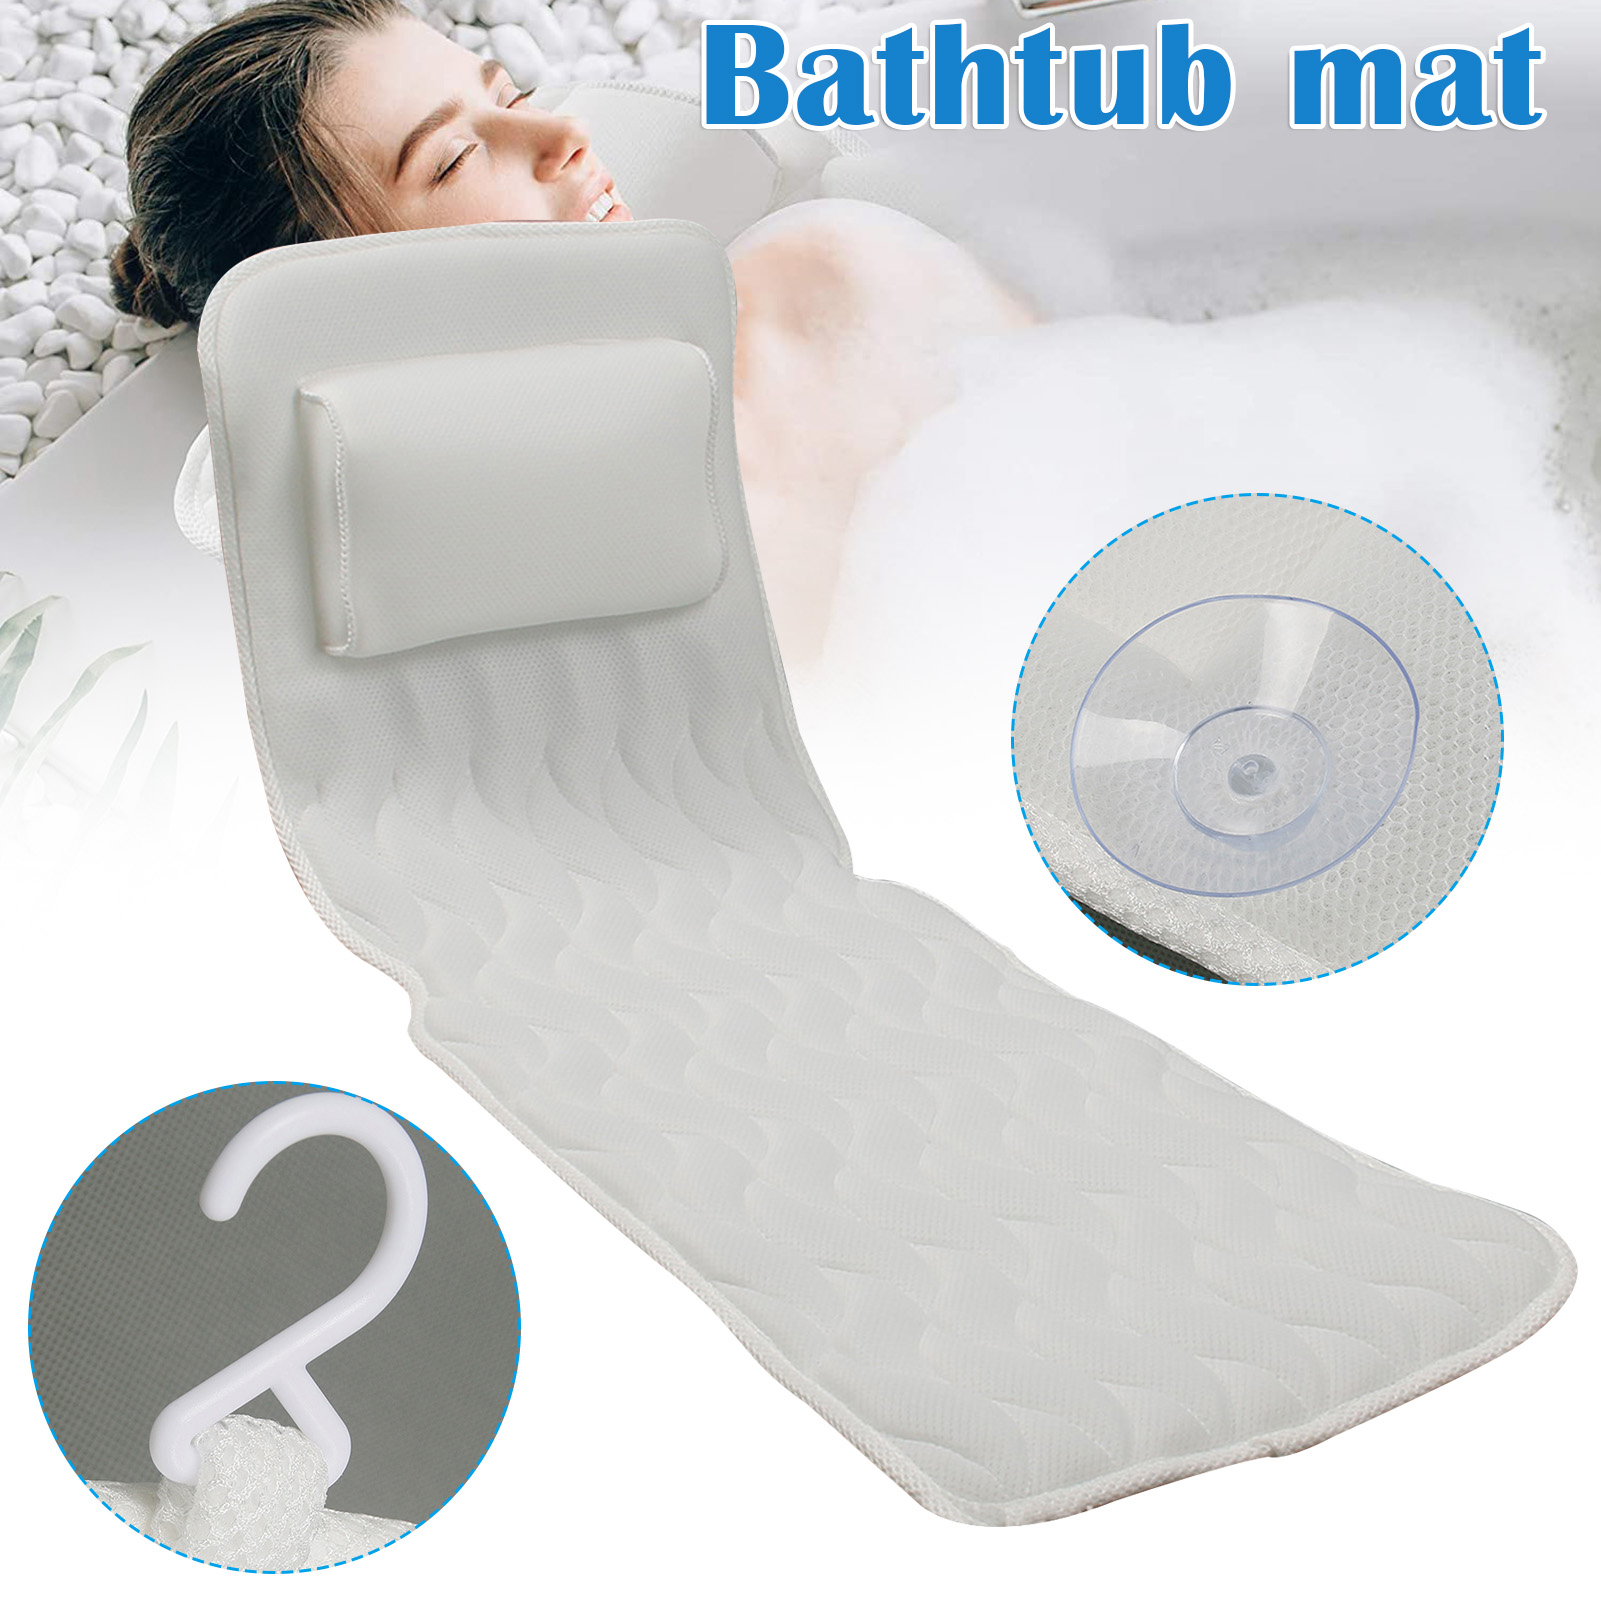 Full Body Bath Pillow Non-Slip Luxurious 3D Air Mesh Mat for Tub Neck and Back Support with 10 Non-Slip Suction Cups DNJ